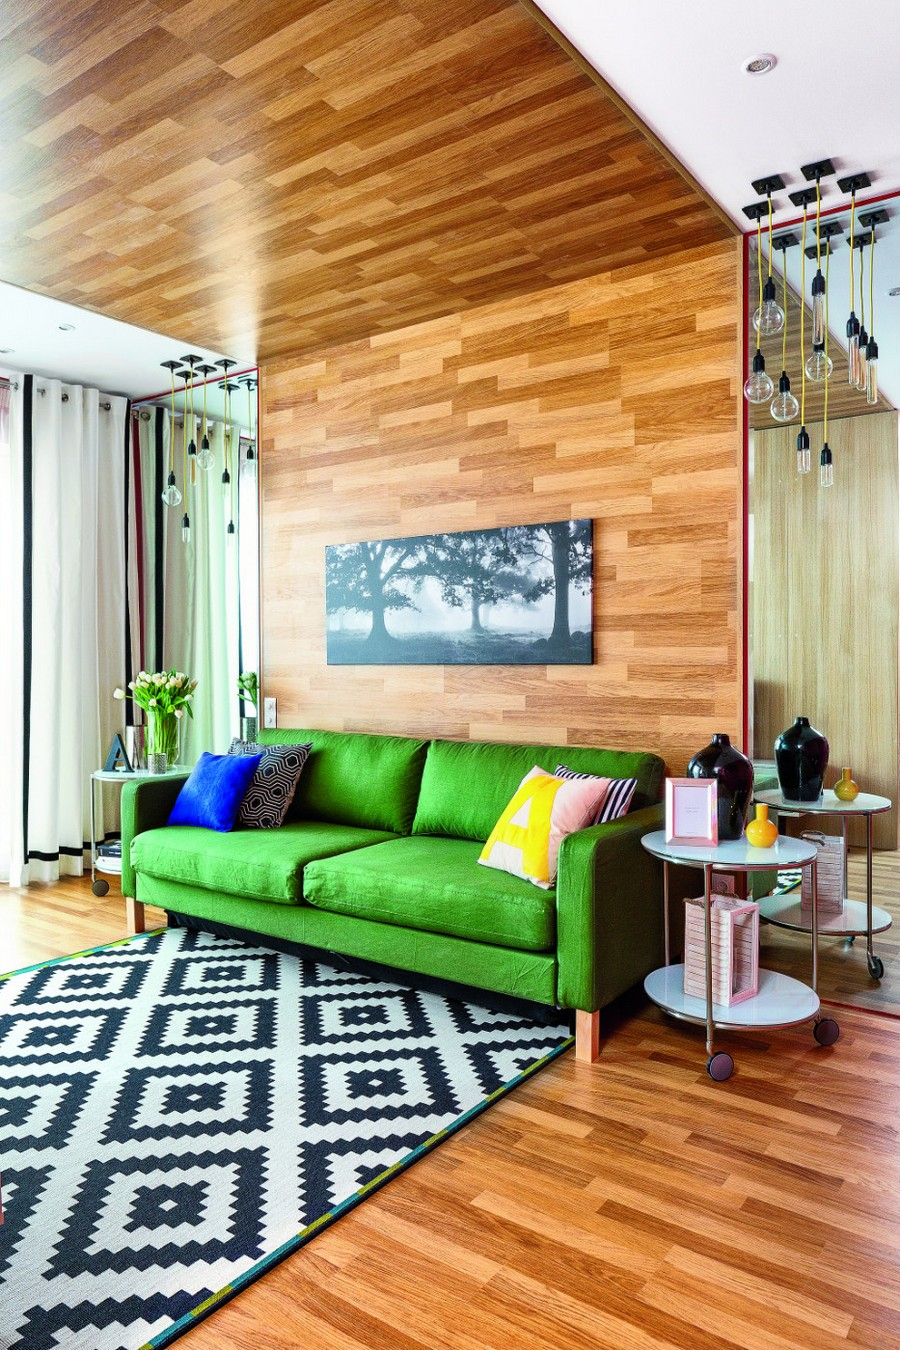 Home Interior Design For Living Room: Wooden Ceiling Décor: 20 Unhackneyed Ideas (Part 1)